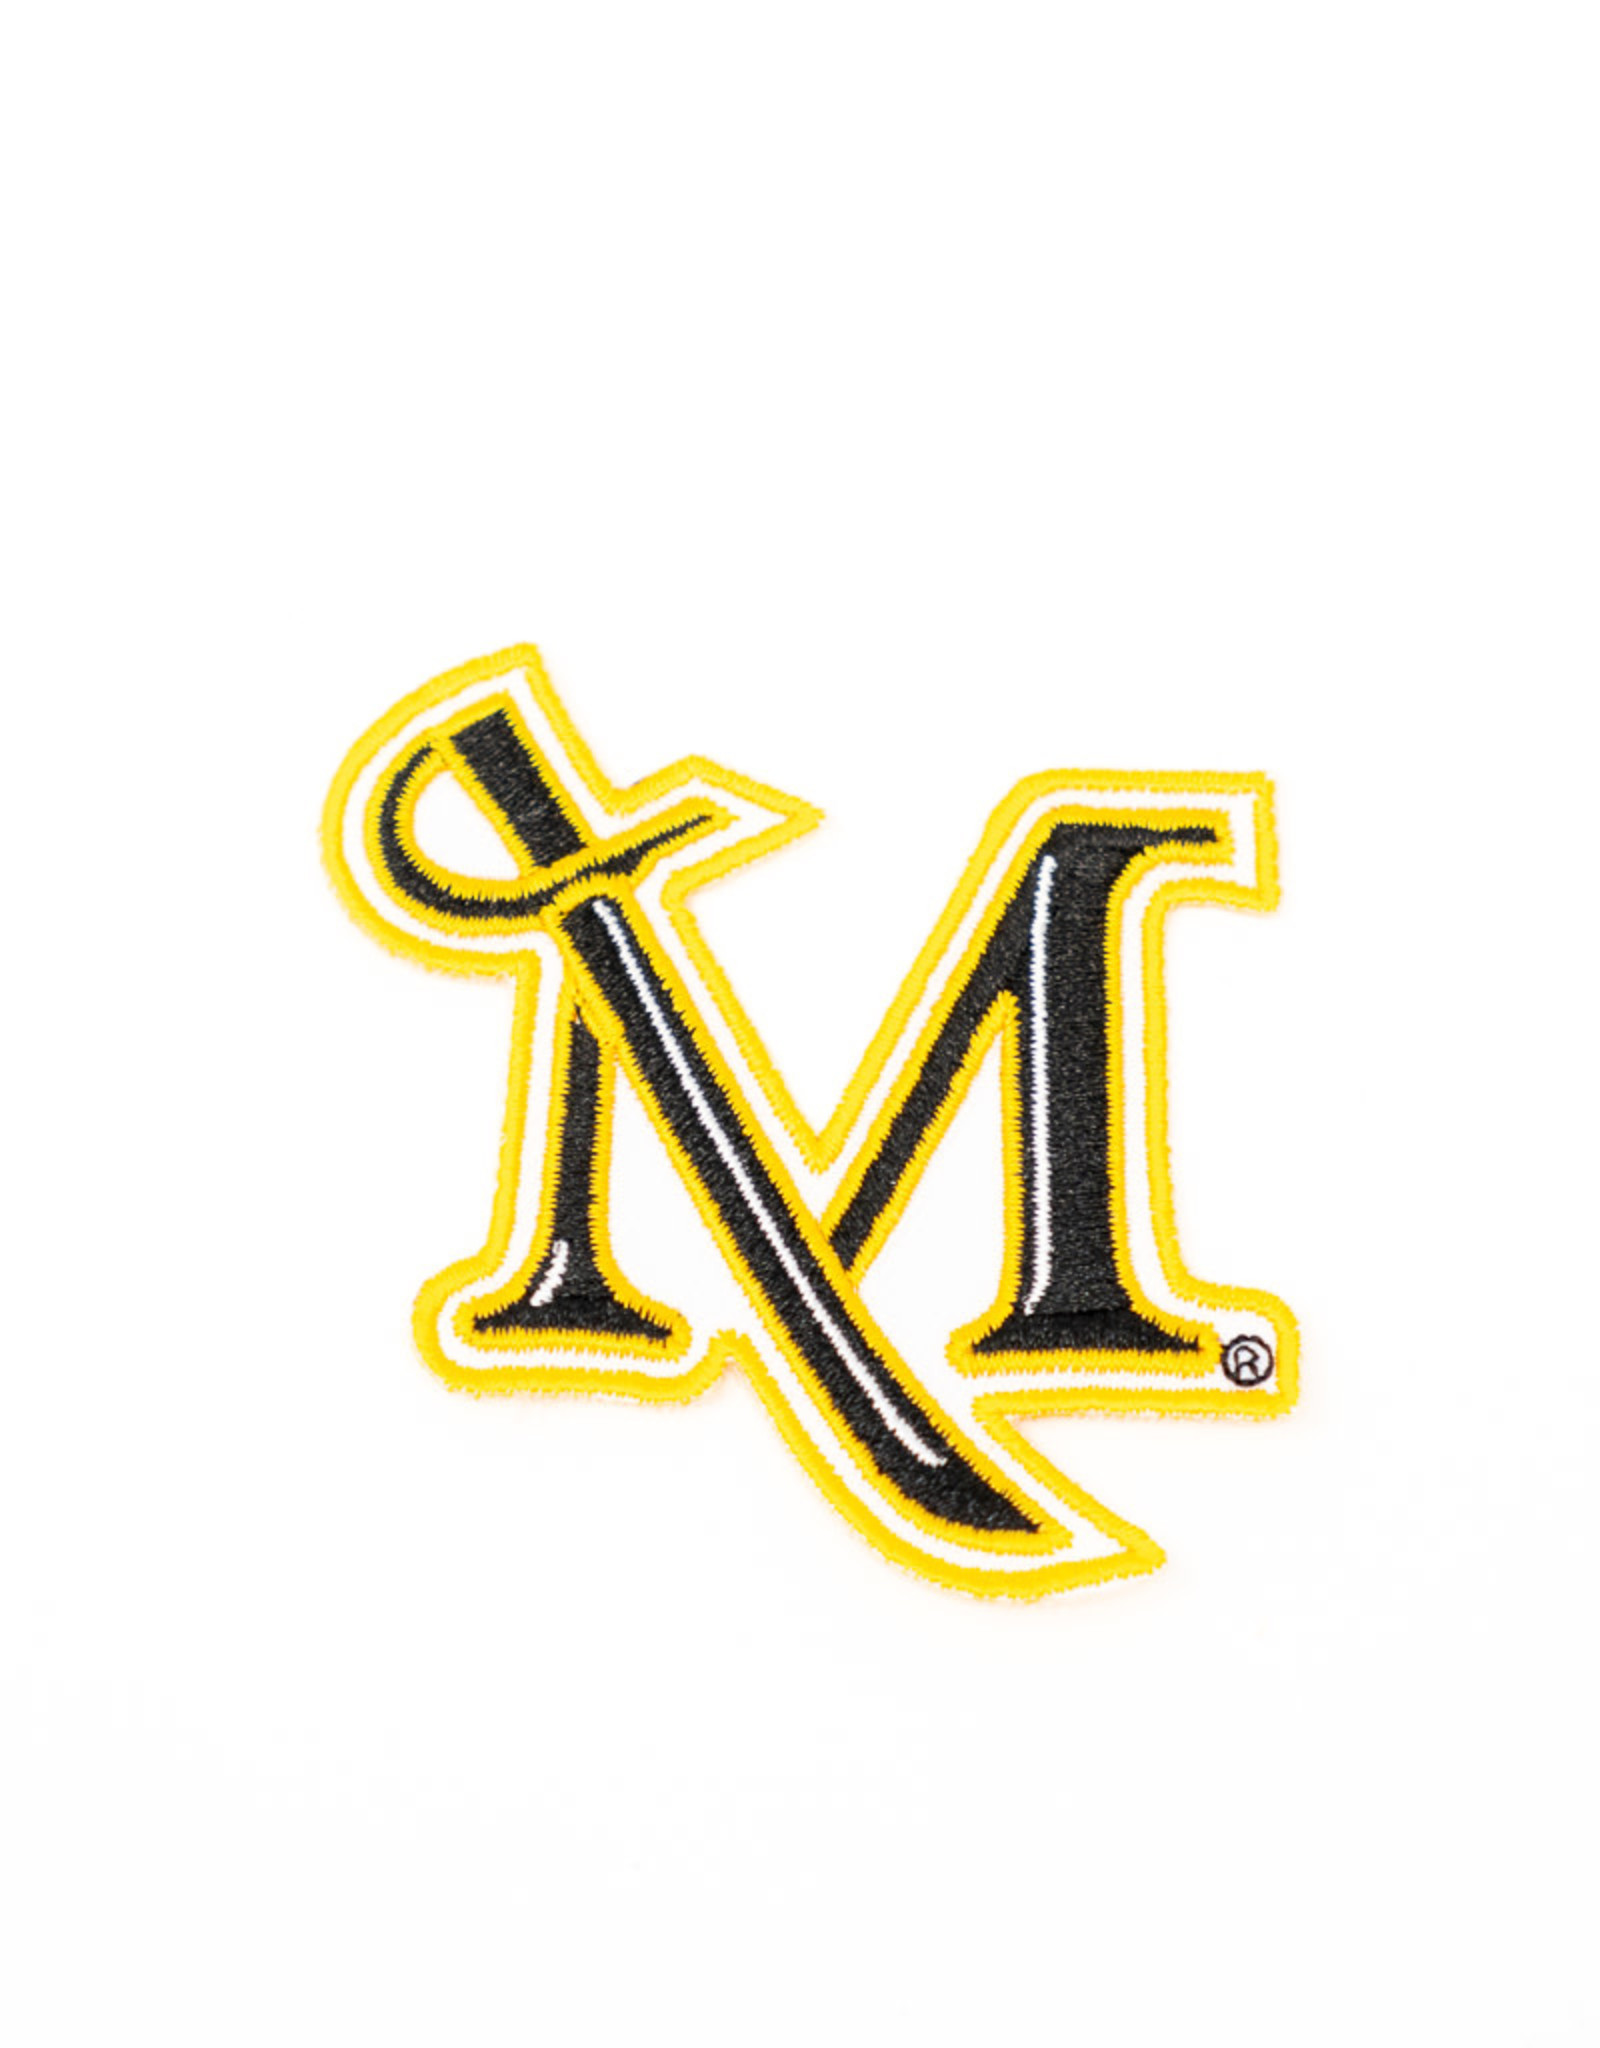 M Sword Patch - Small